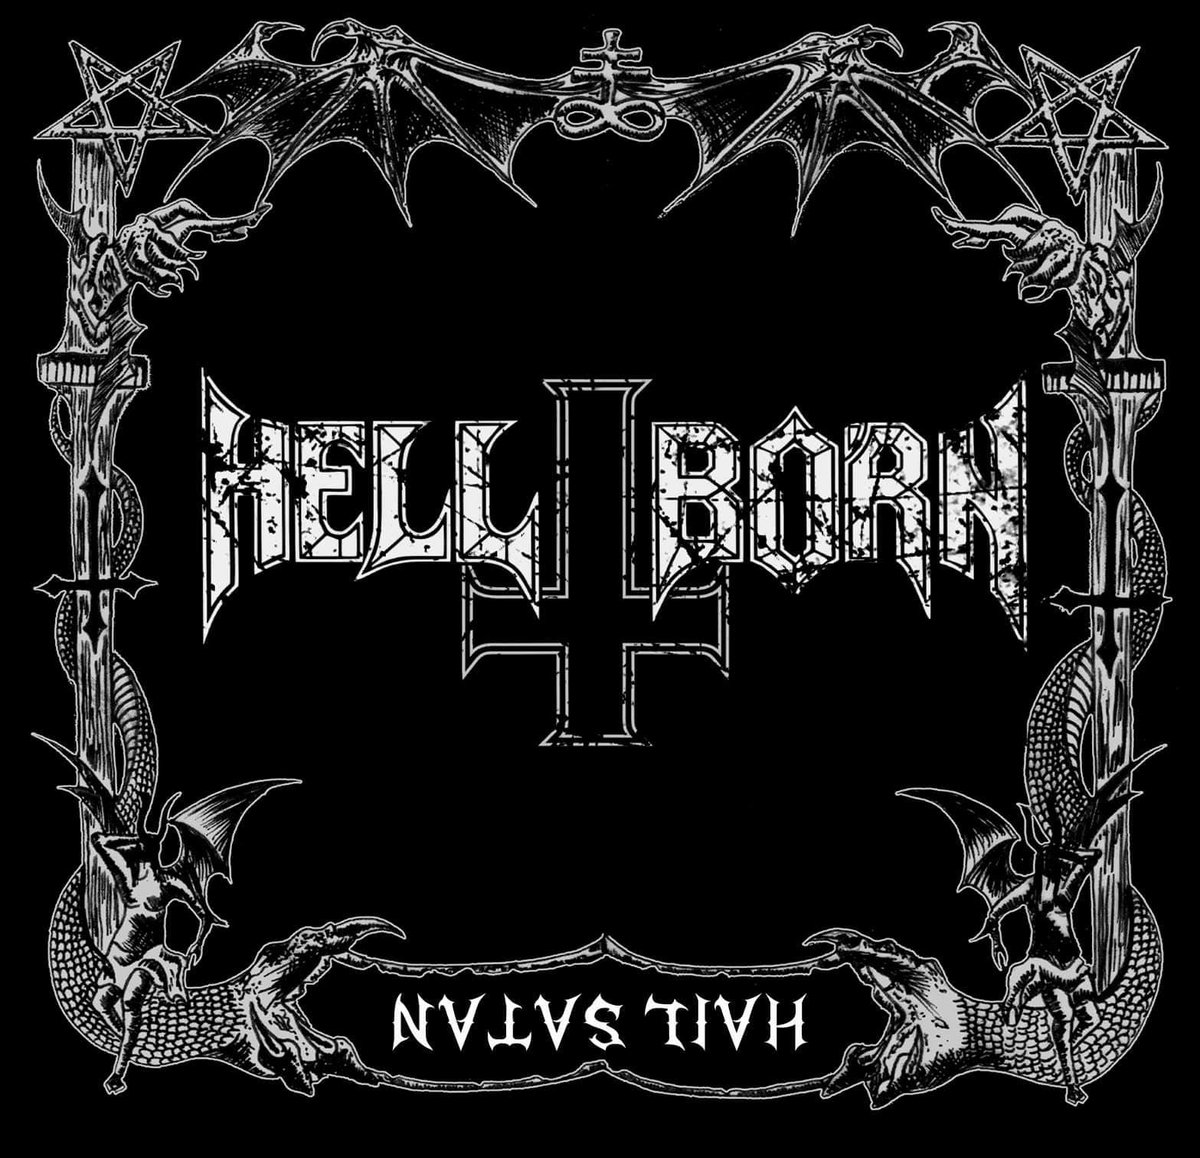 HELL​-​BORN Natas Liah Album Cover Artwork